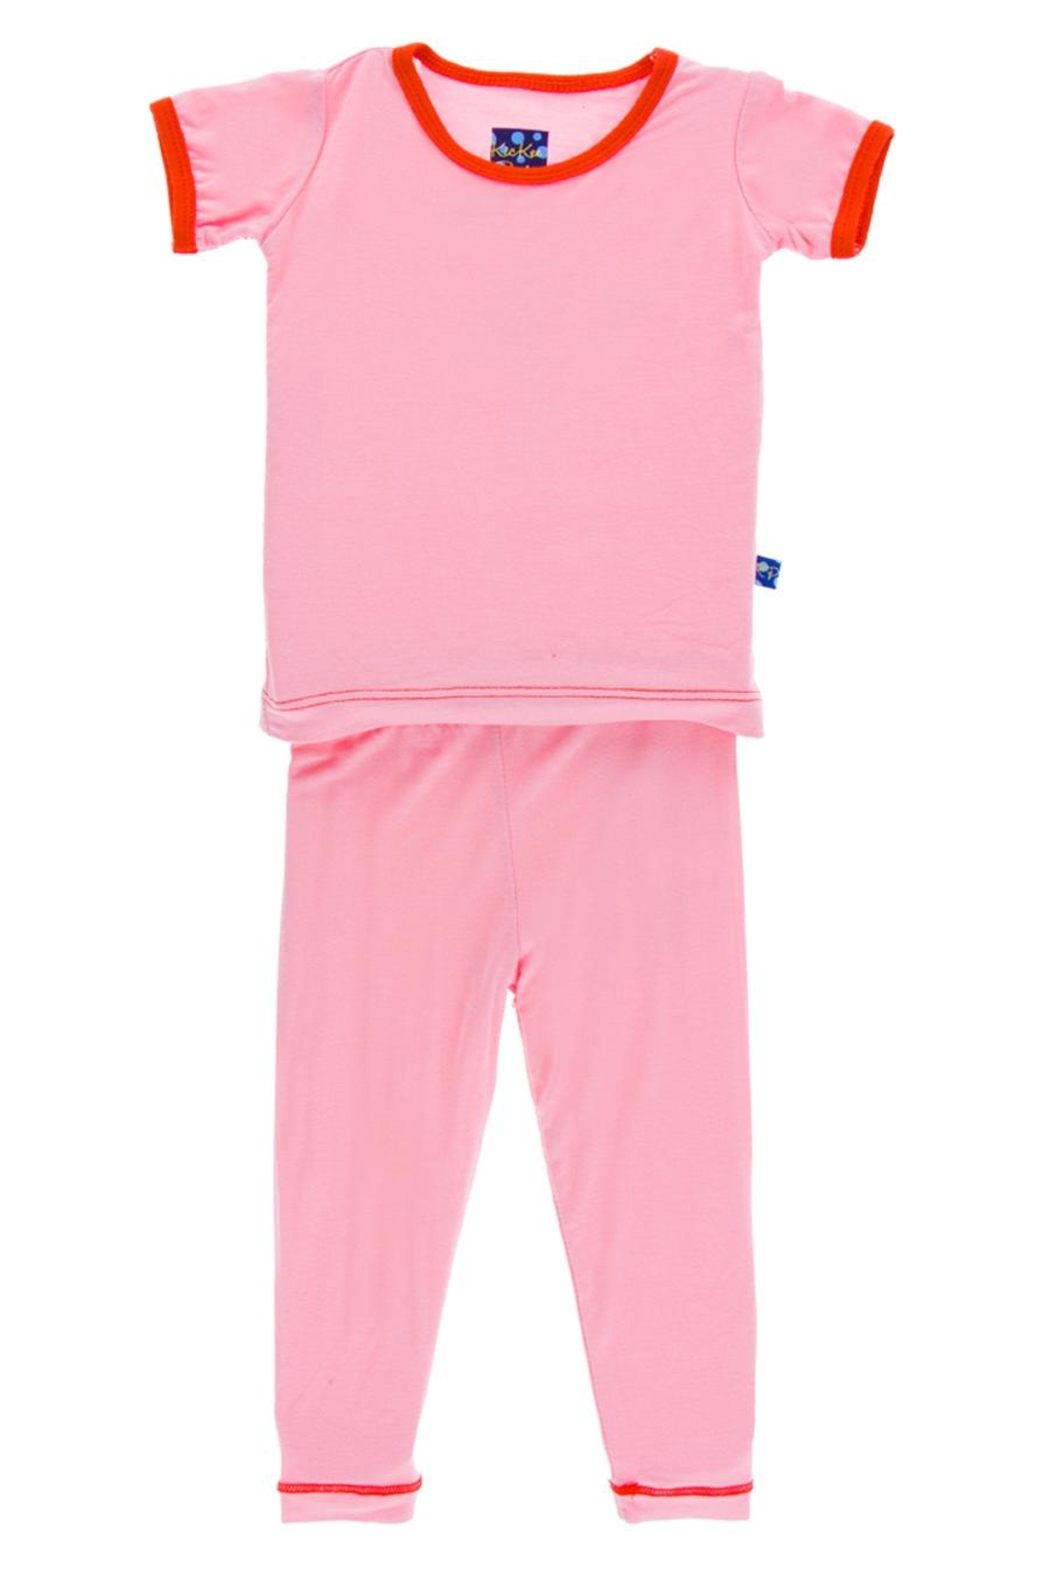 Kickee Pants Lotus-Poppy Pj Set-Infant - Main Image